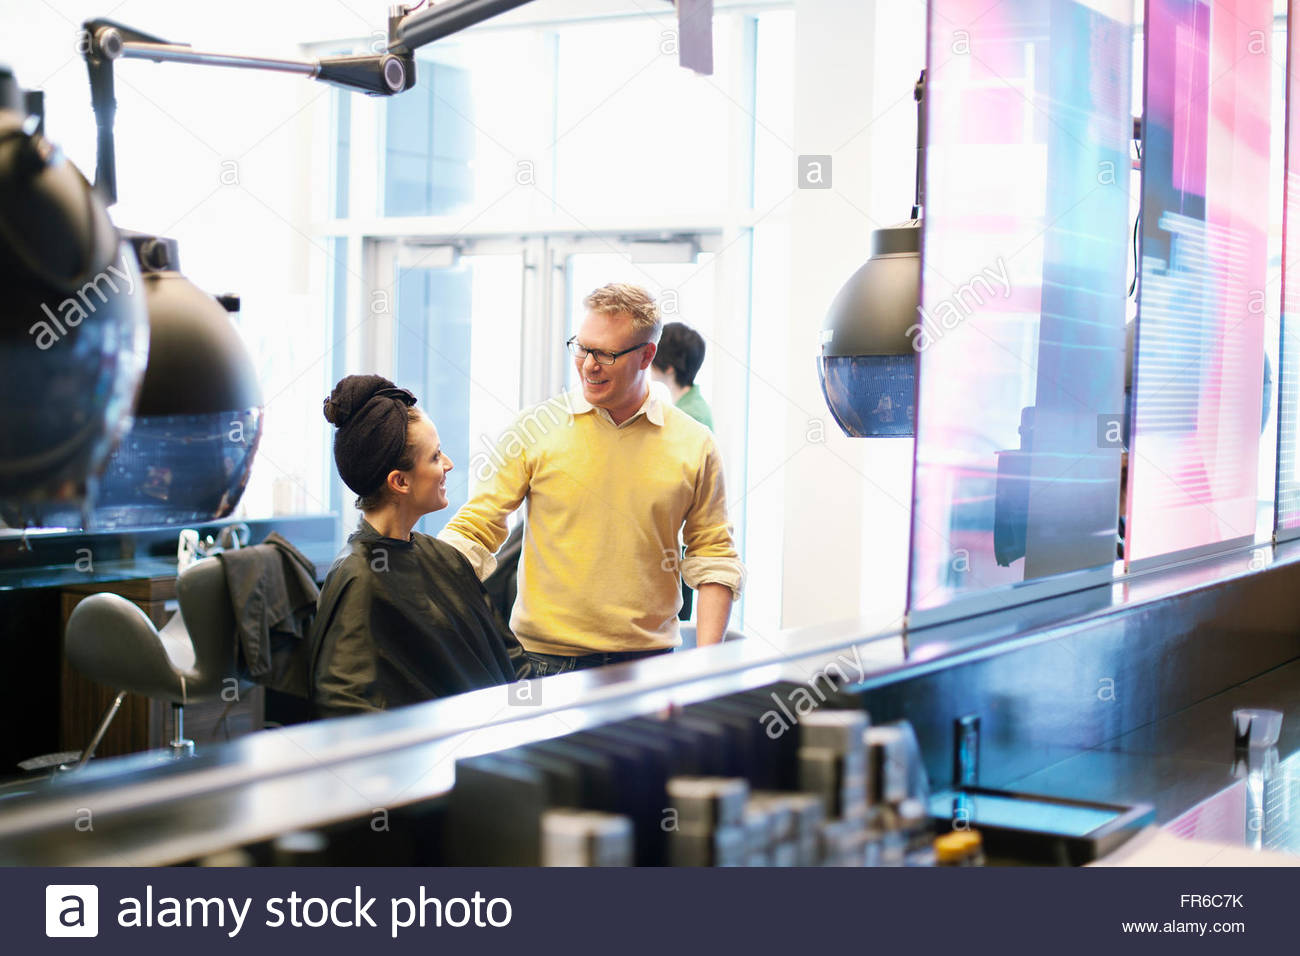 hairstylists working in salon - Stock Image